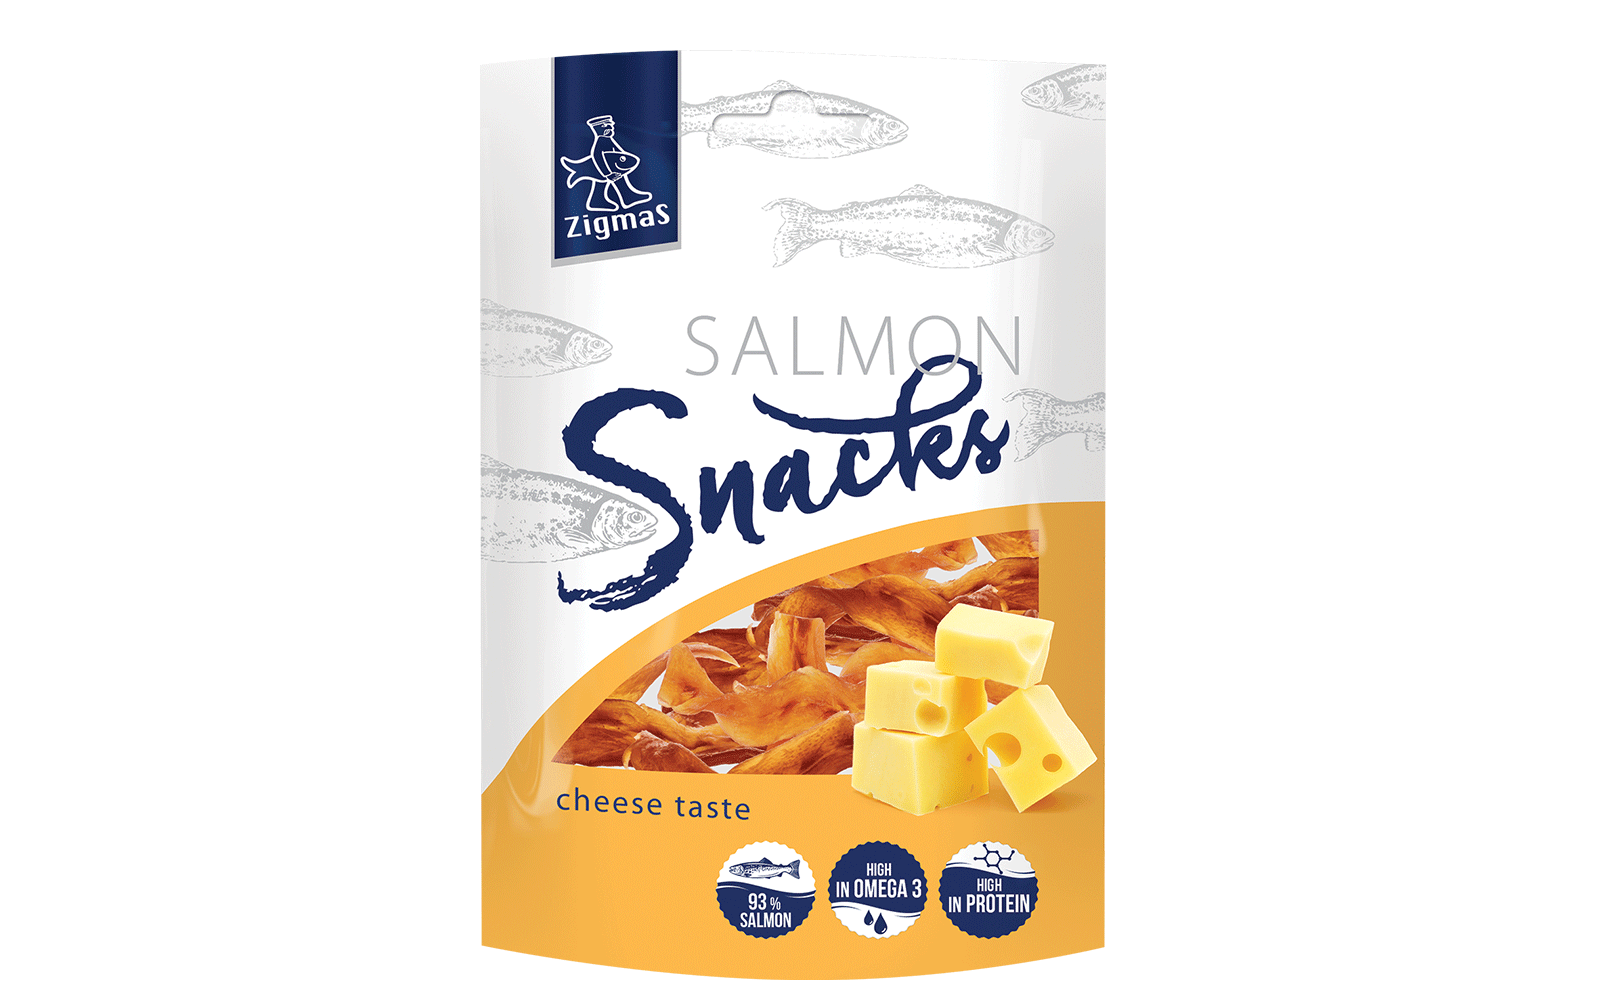 http://www.icecofish.com/wp-content/uploads/2016/06/zigmas-dried-cheese-taste-salmon-fillet-strips-1600x1000.png